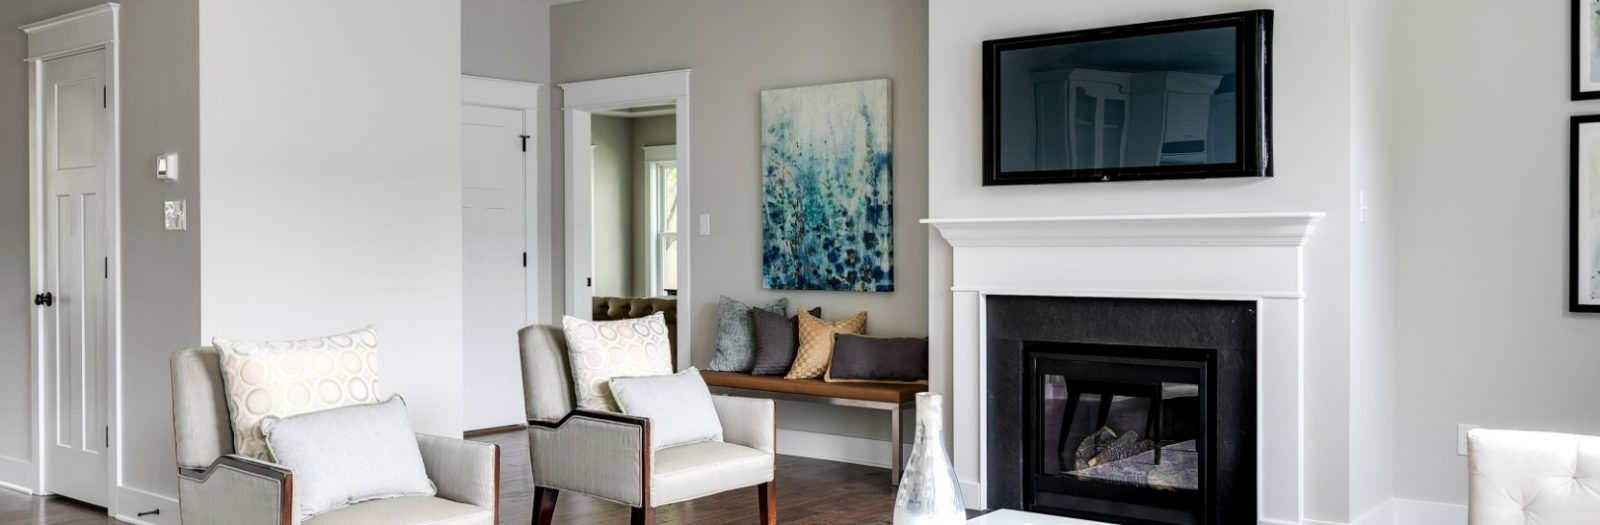 Family room with linear fireplace in home built by Richmond Hill Design-Build